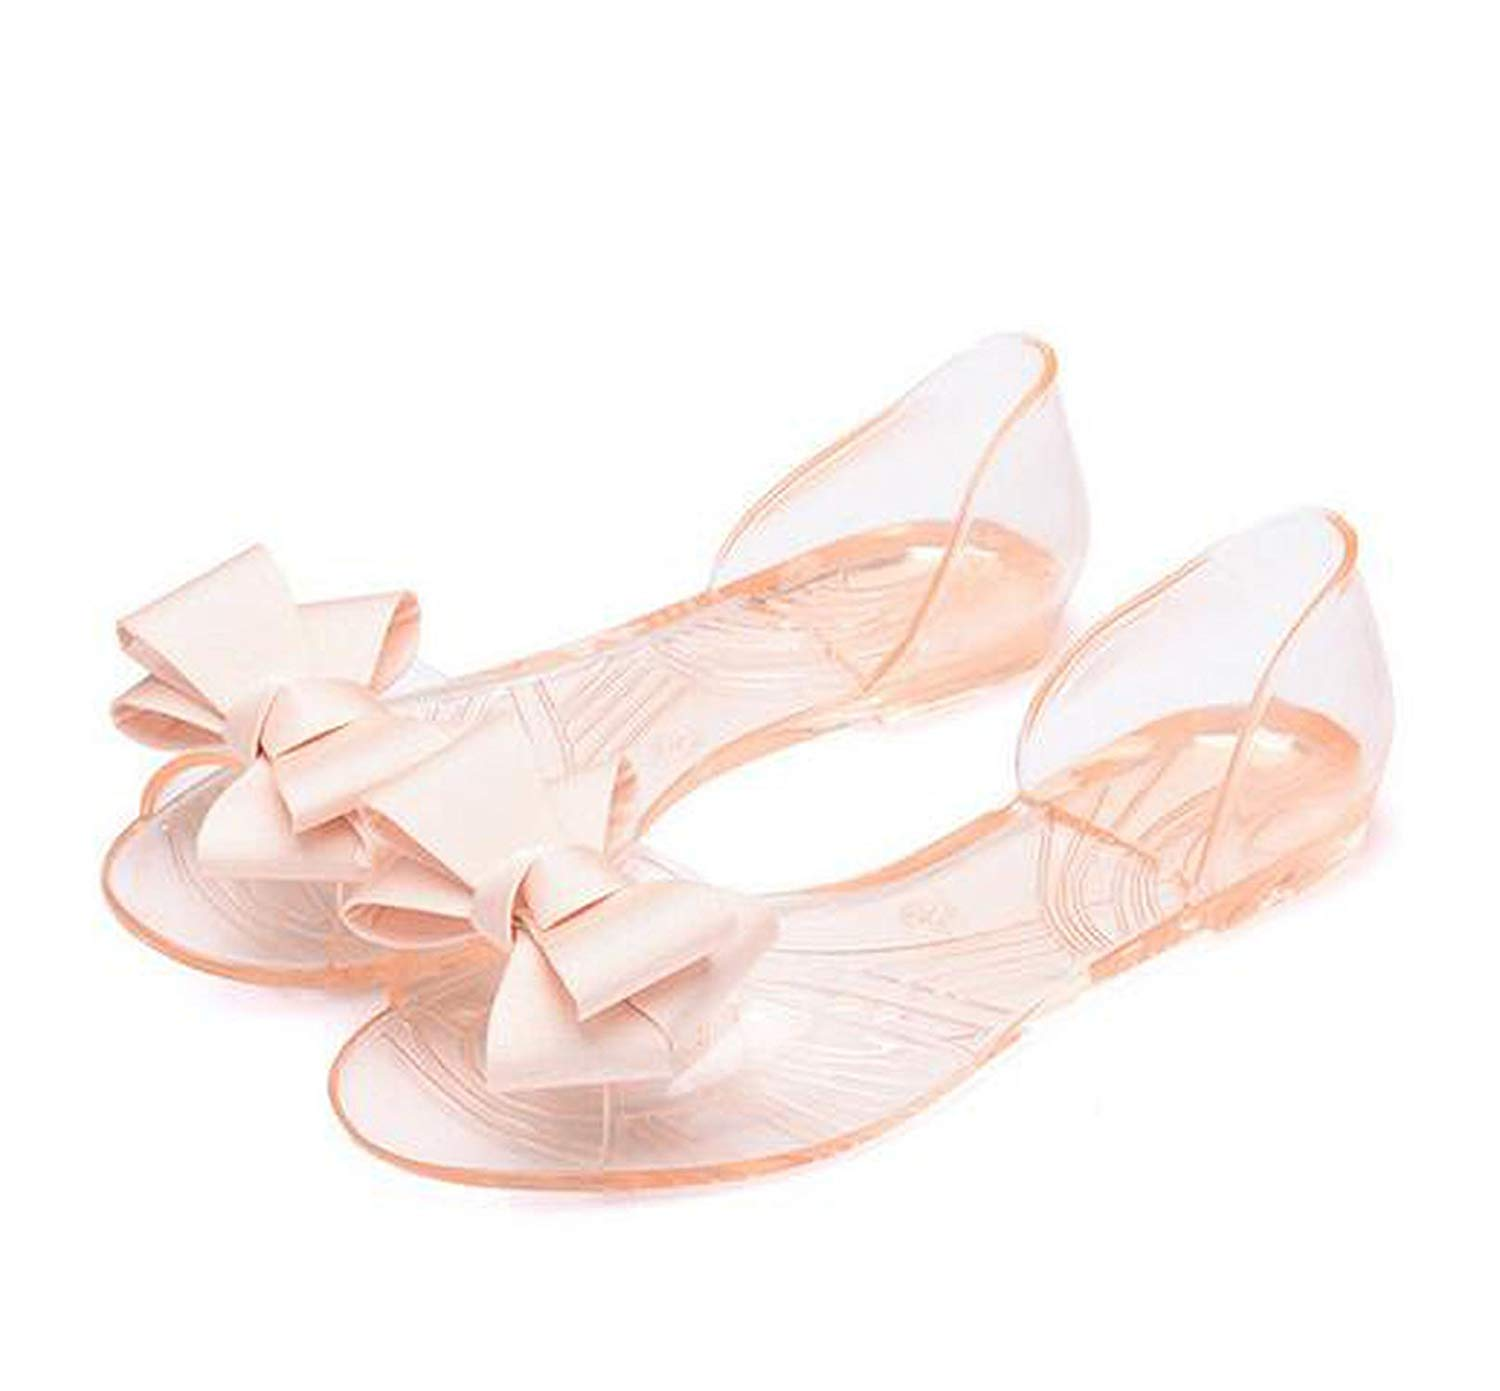 d2e33538142417 Get Quotations · shine-hearty-heeled-sandals Women Sandals Style Bling  Bowtie Peep Toe Jelly Shoes